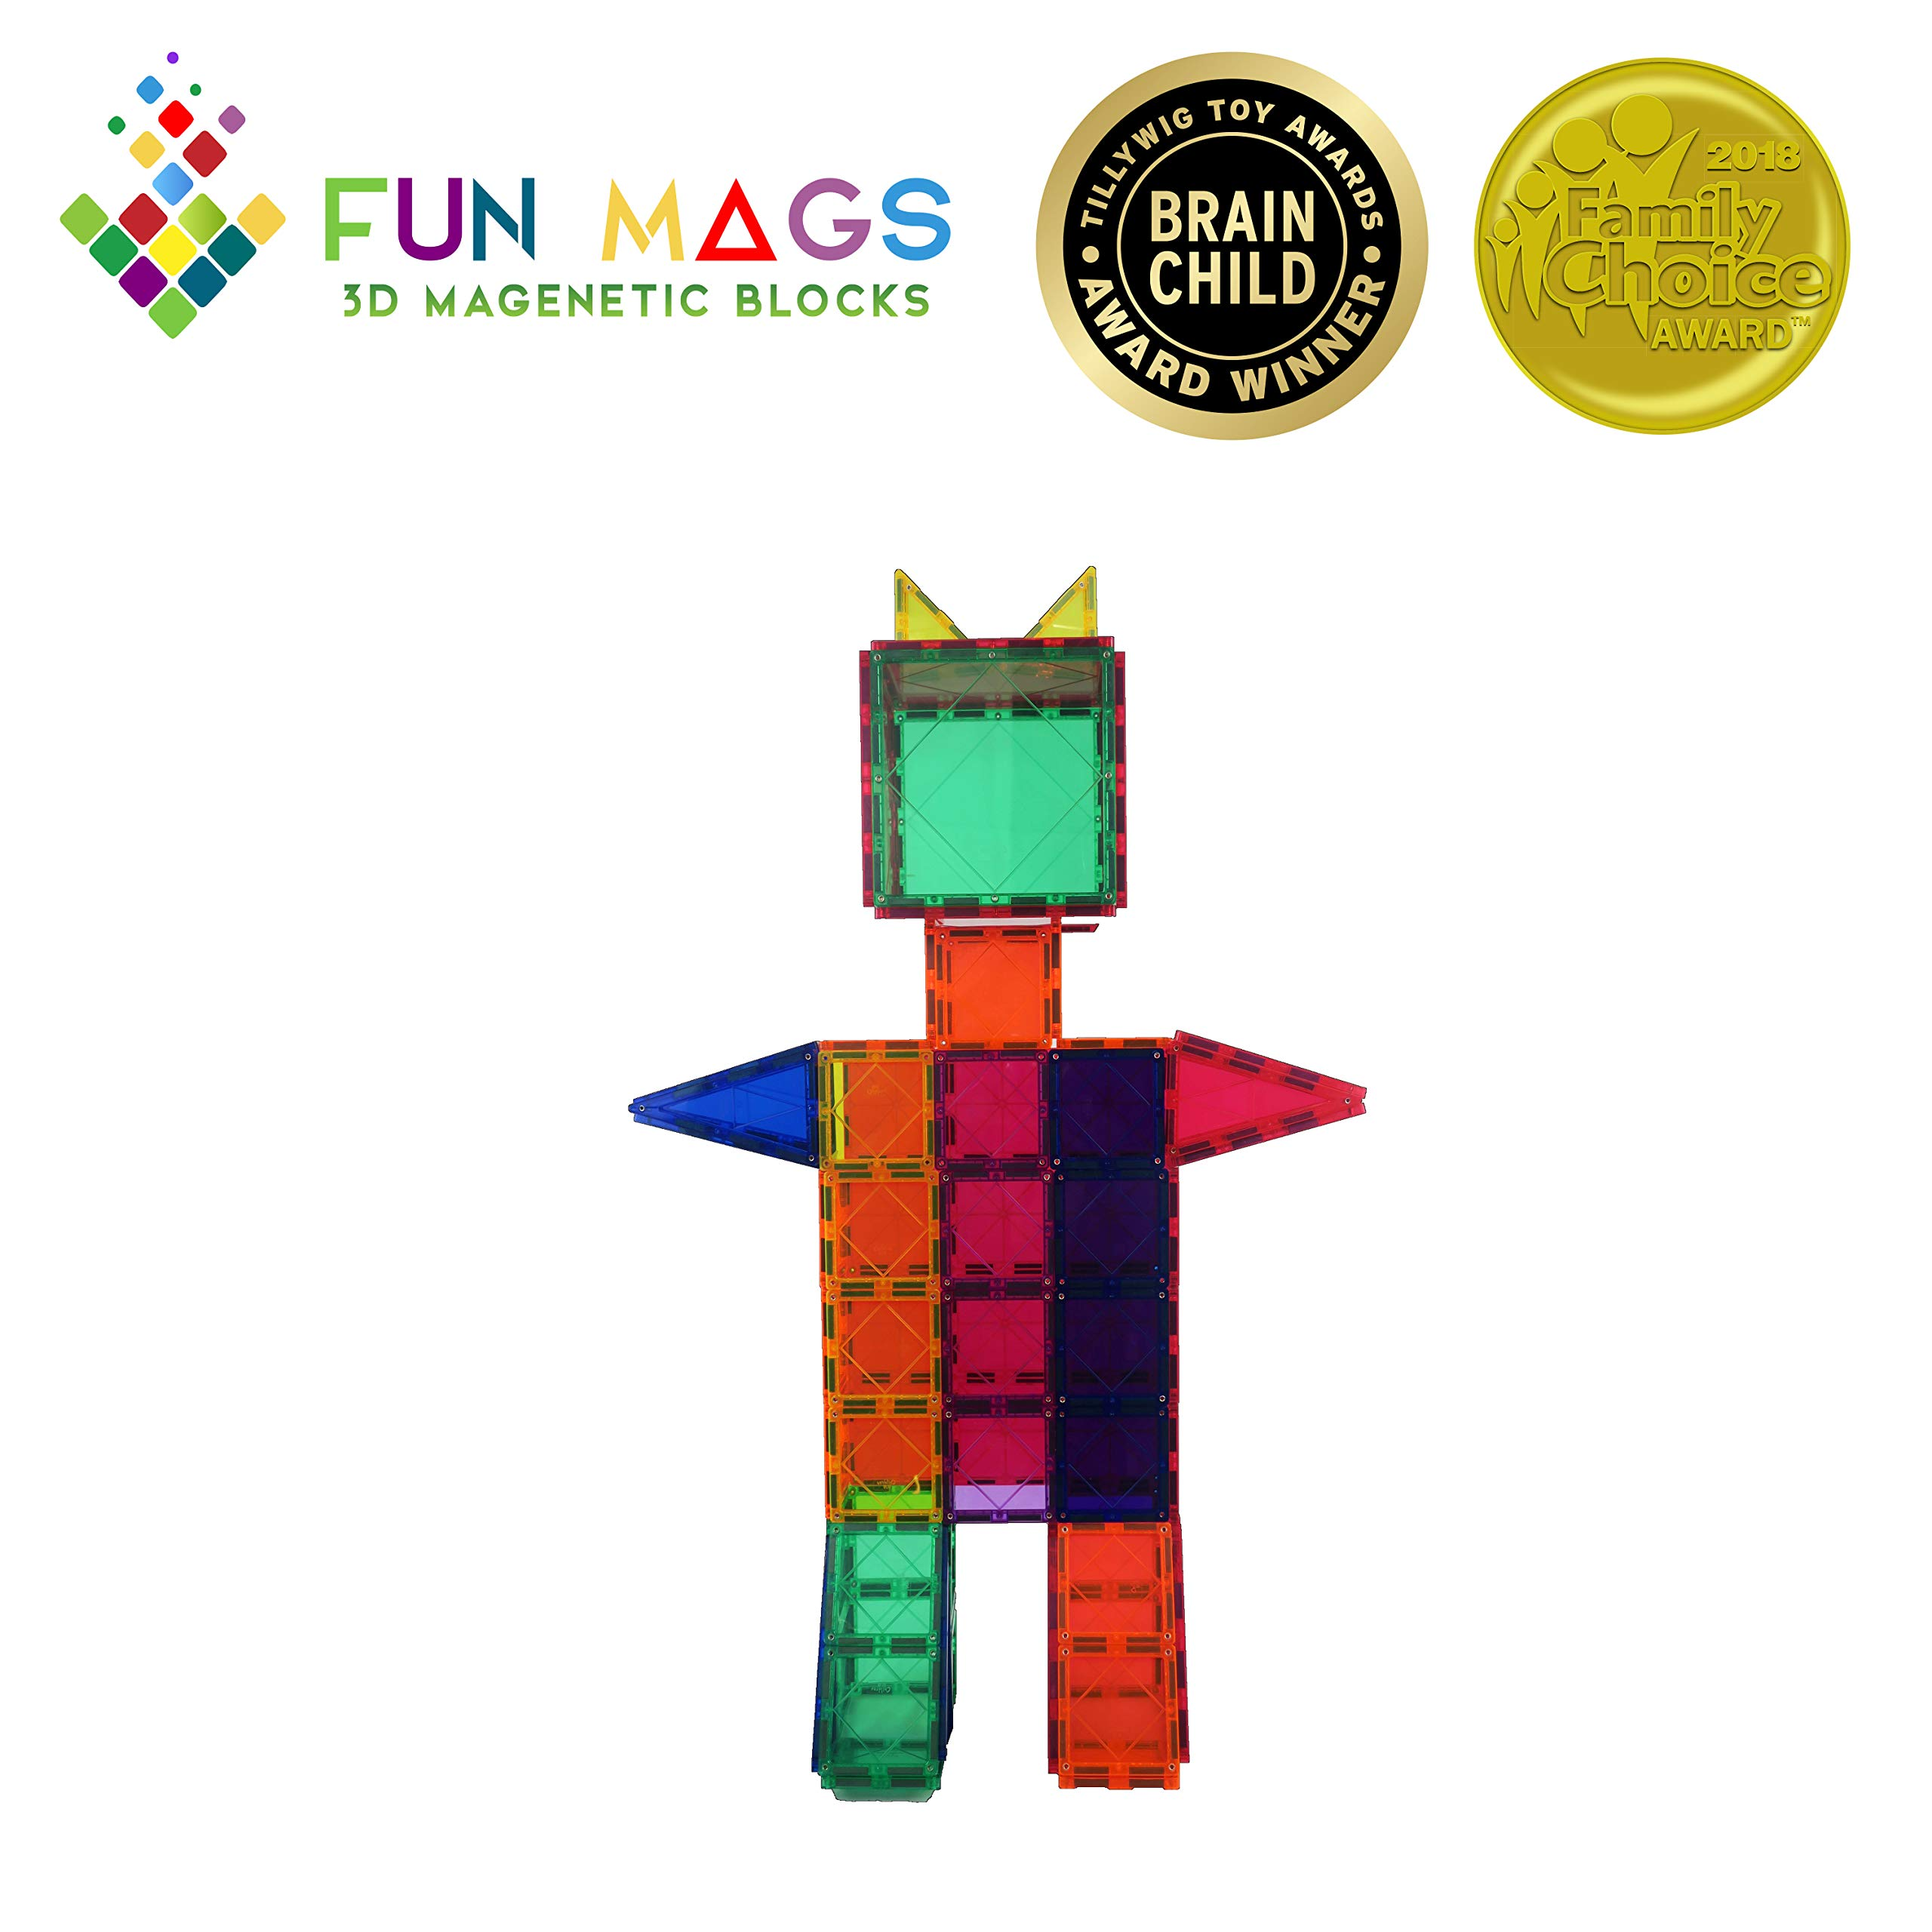 Fun Mags Magnetic Blocks 100-Piece Set 3D Magnetic Building Blocks, STEM Educational Magna Magnetic Tiles Magnet Toys for Kids, Toddlers by Lustien Toys (Image #5)